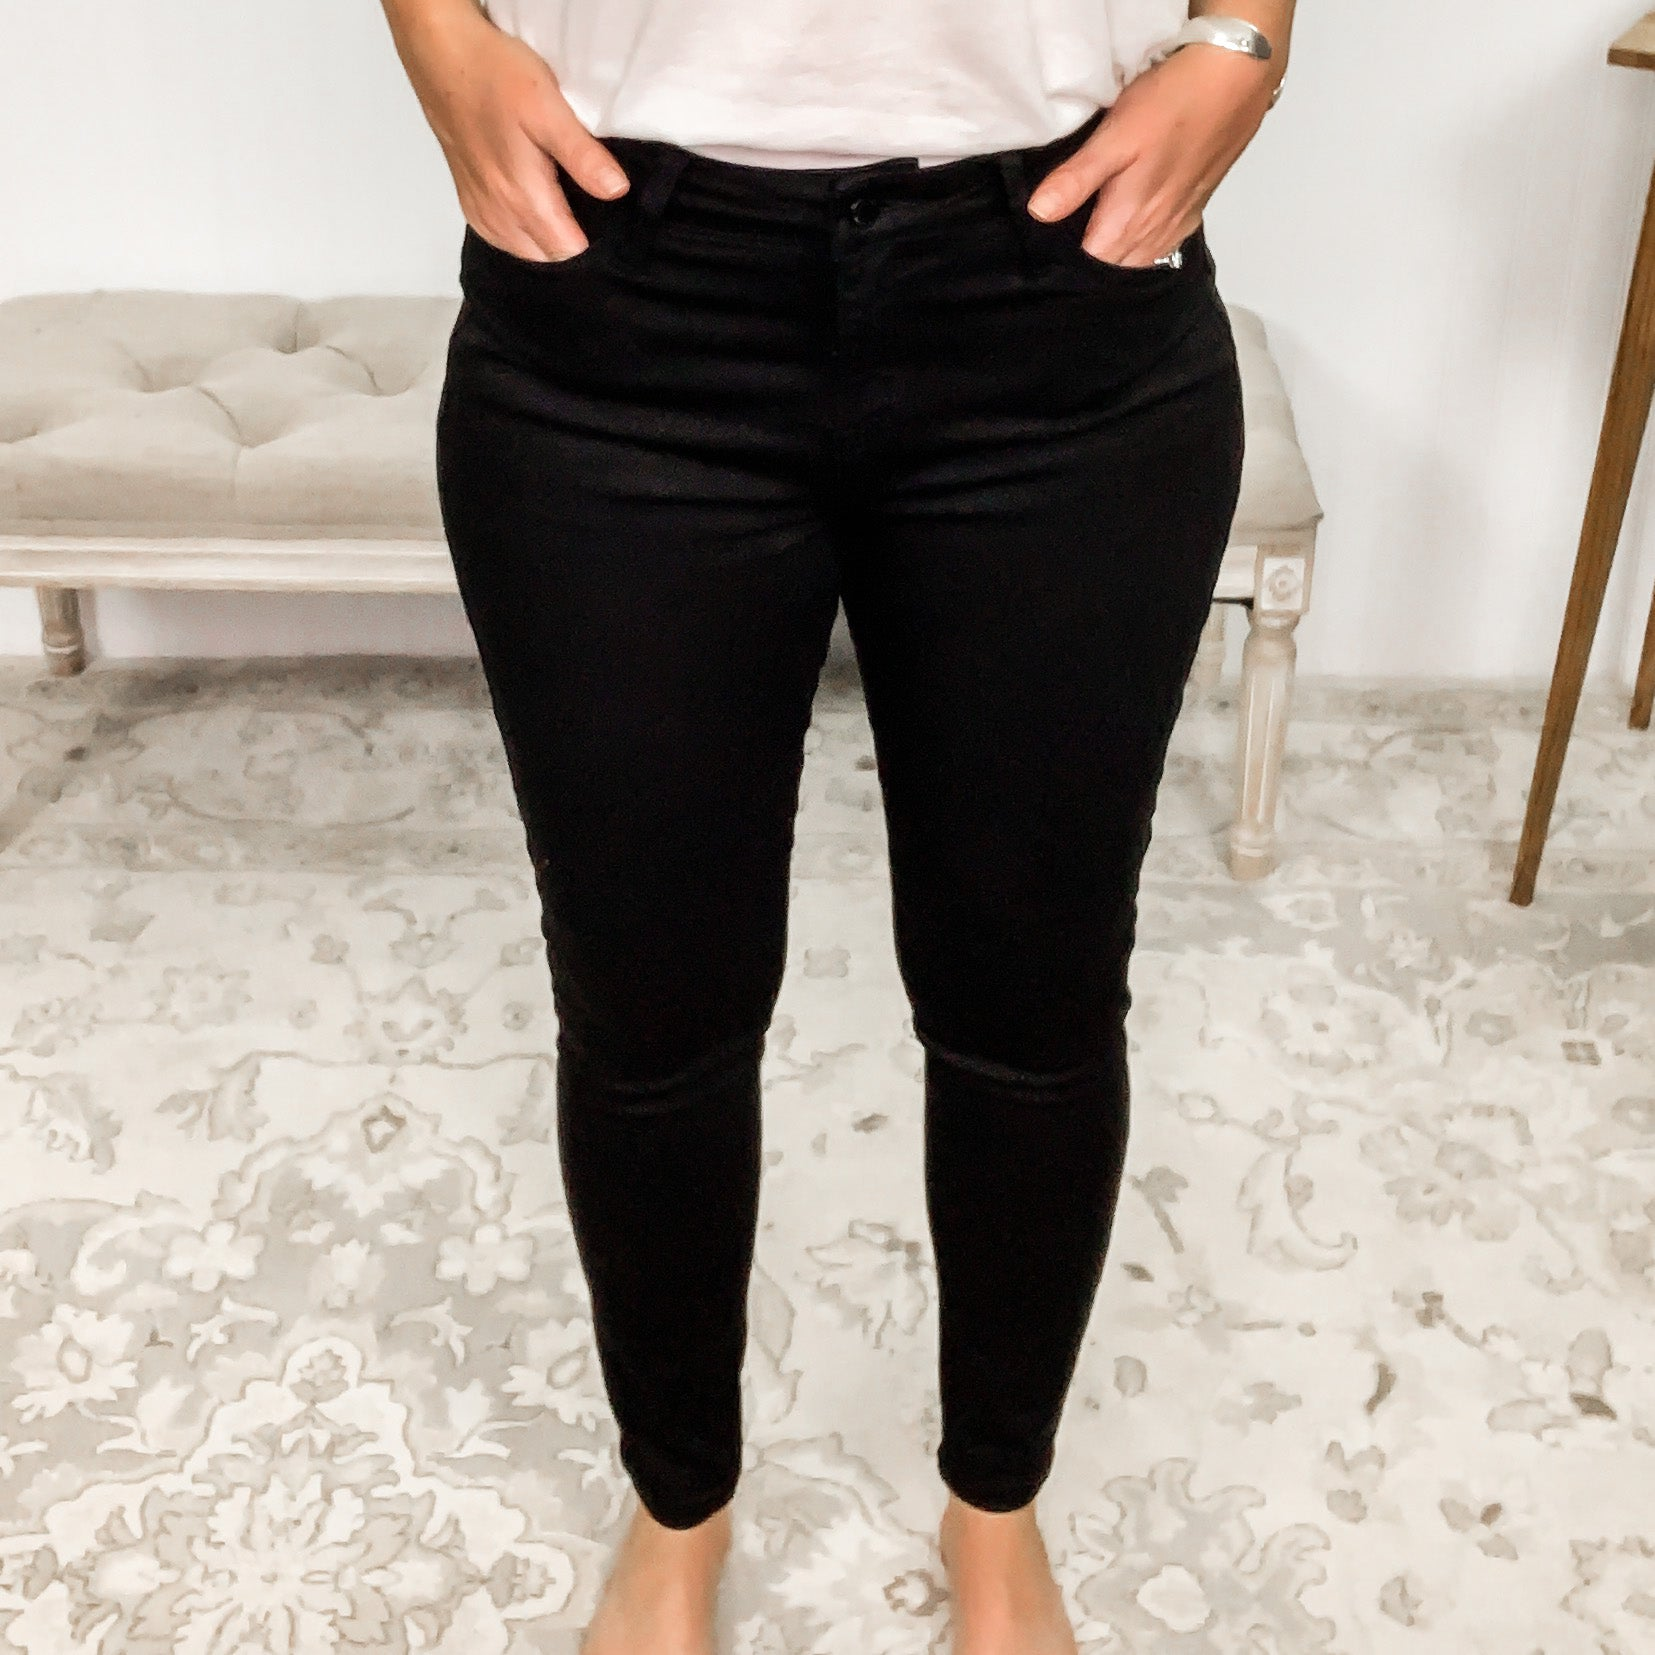 Judy Blue Mid-Rise Non-Distressed Black Skinny Jeans